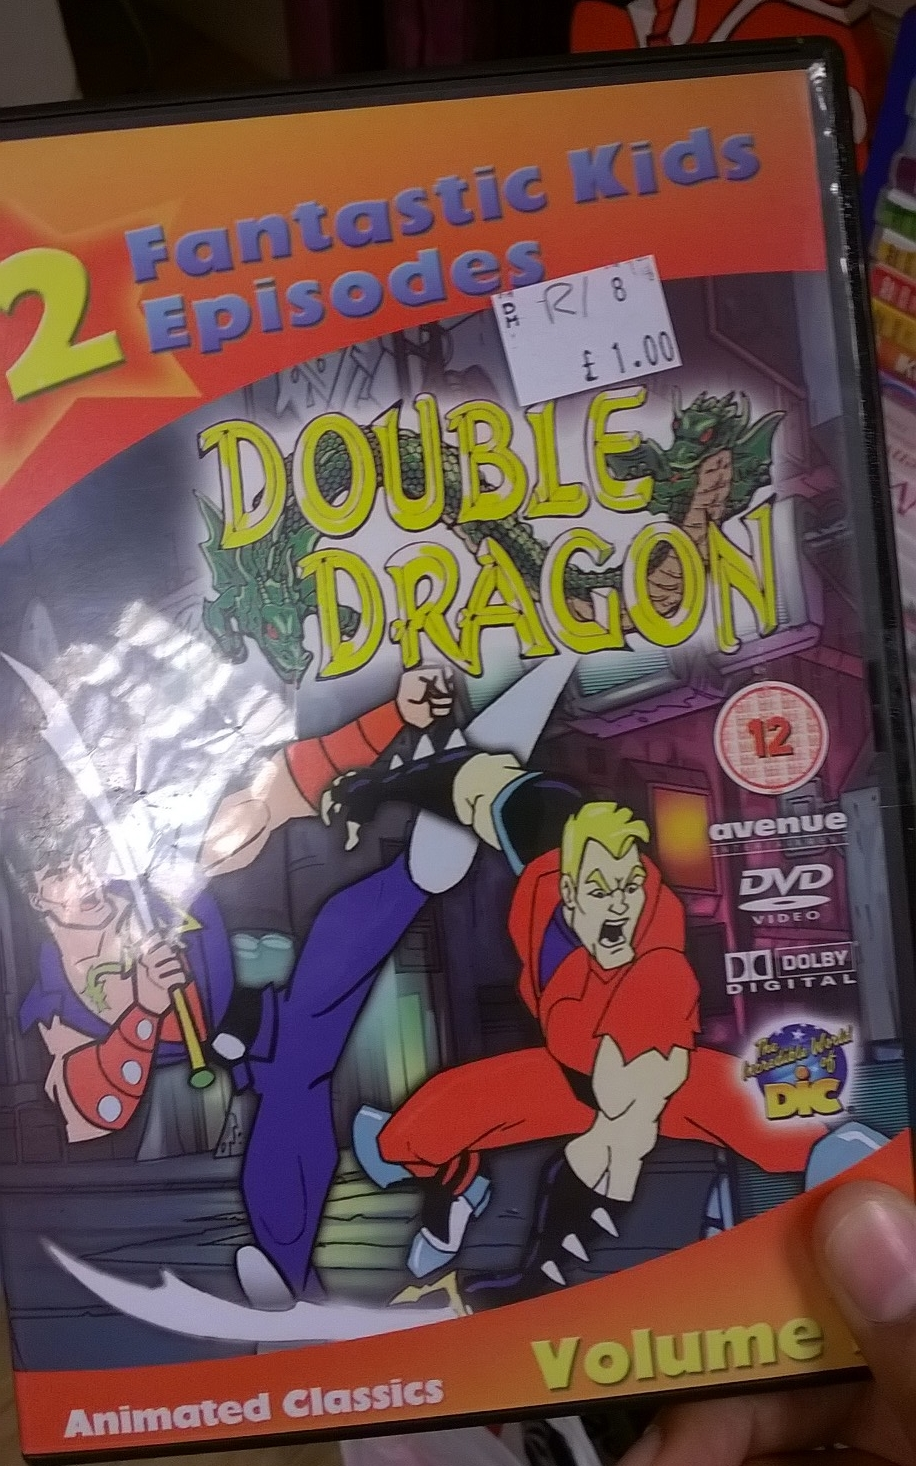 Not sure I'd call it a classic animation, classic game definitely!